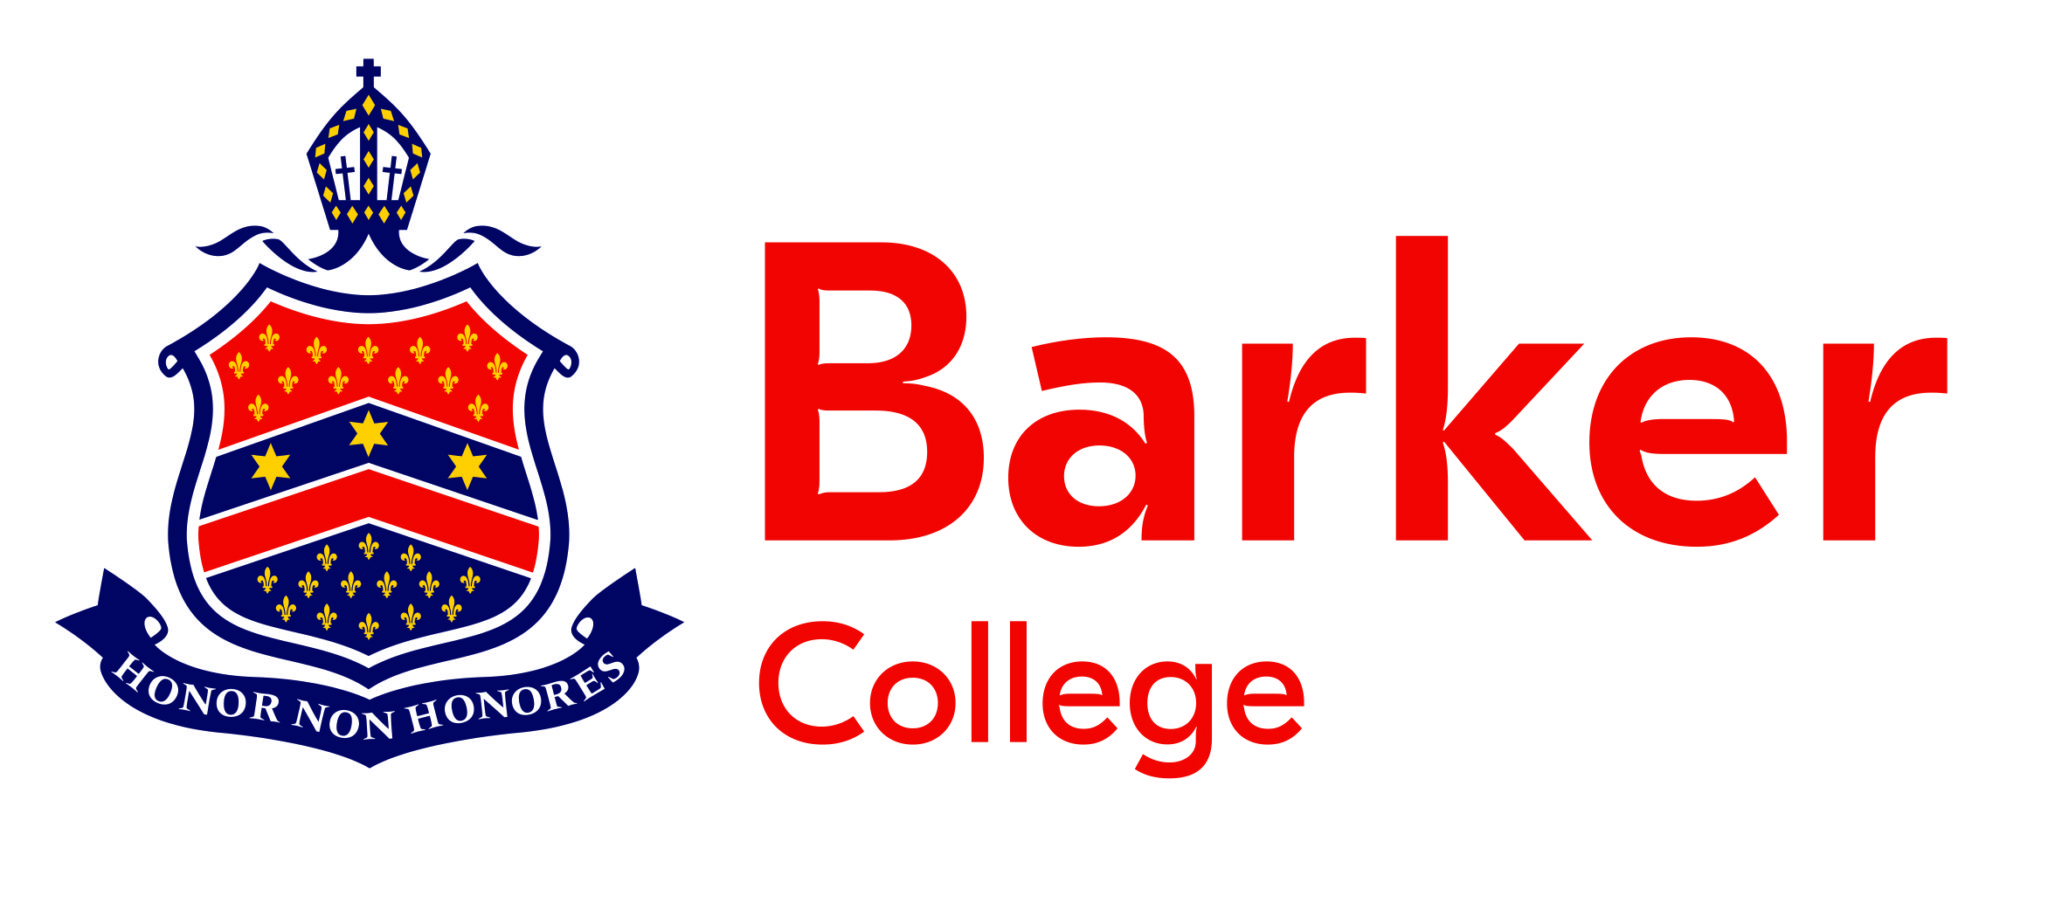 Barker College, Hornsby